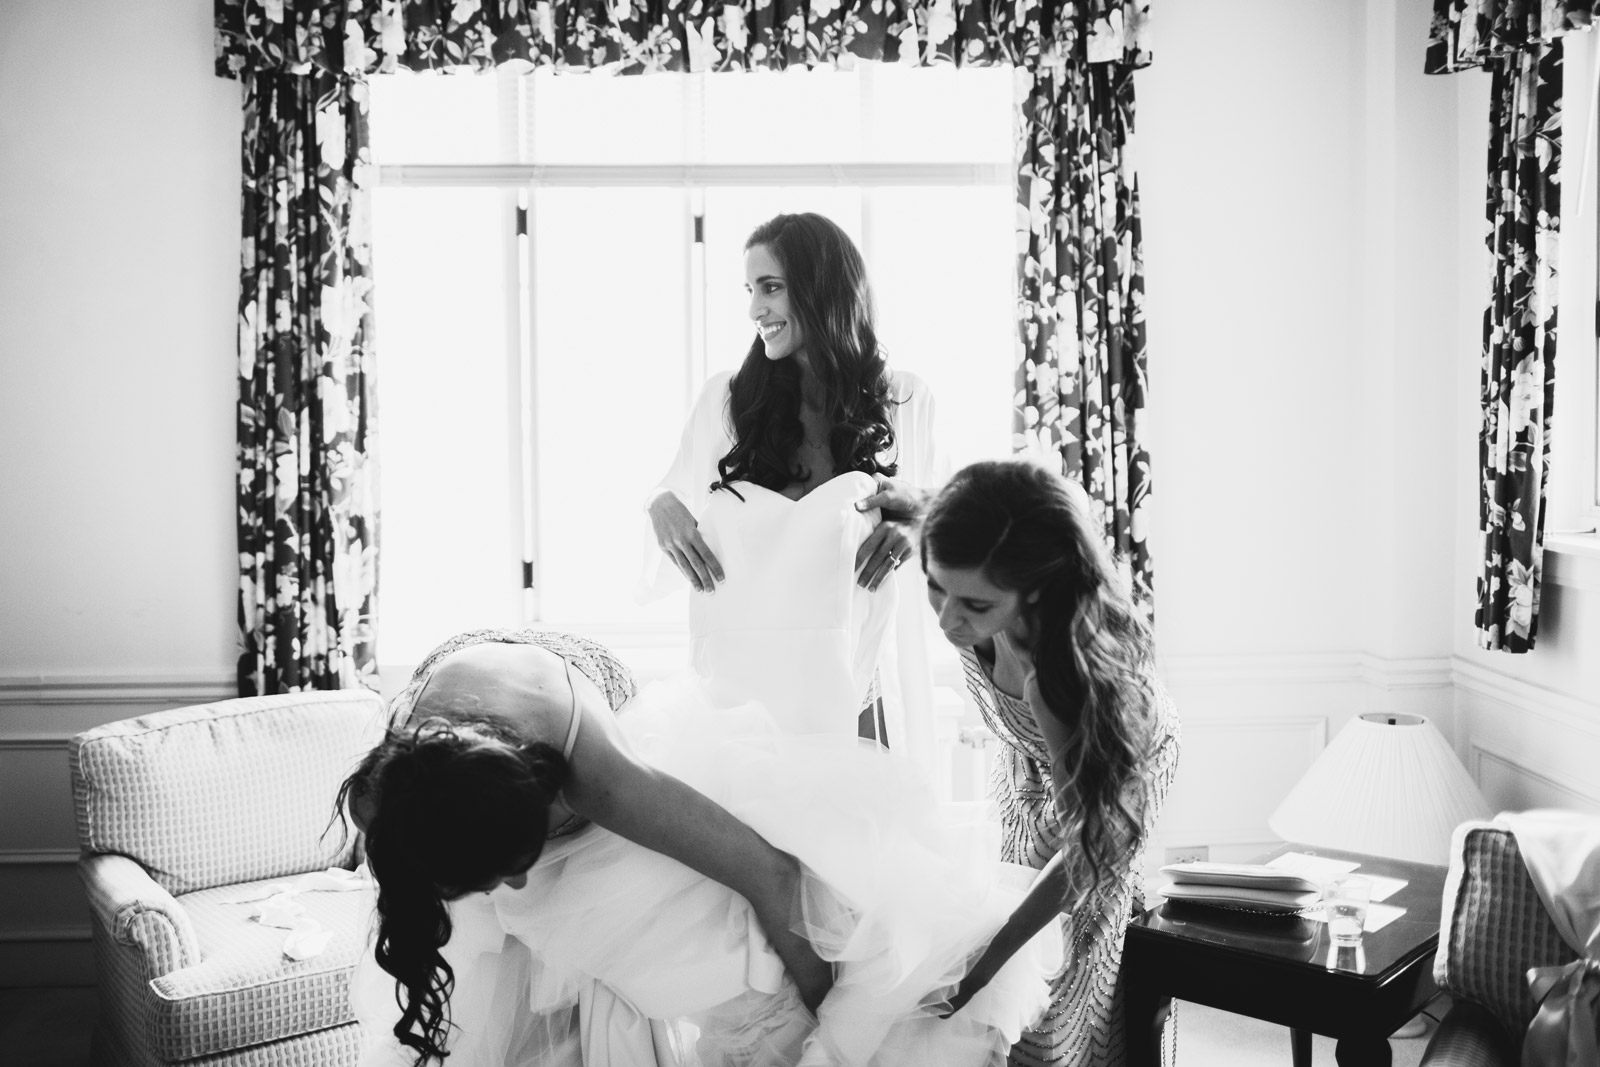 photo of the bride putting on her dress at homestead hotel in Evanston captured by Mark Trela Photography